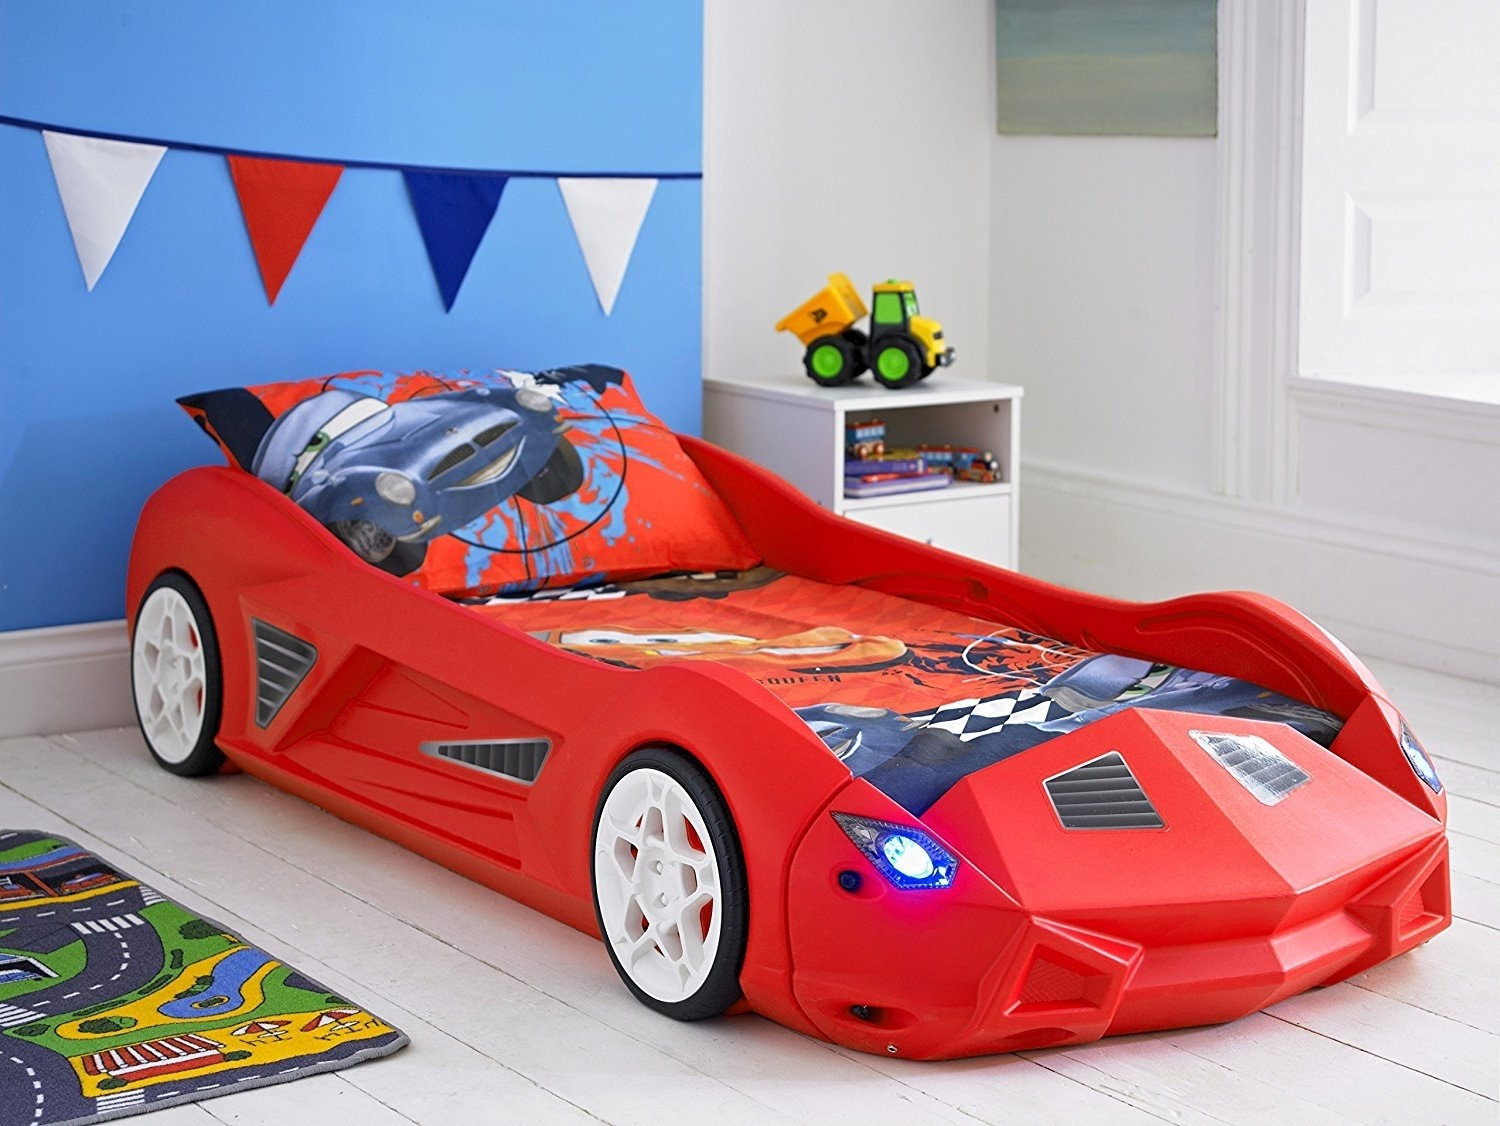 Picture of: Kid Race Car Bed You Ll Love In 2020 Visualhunt